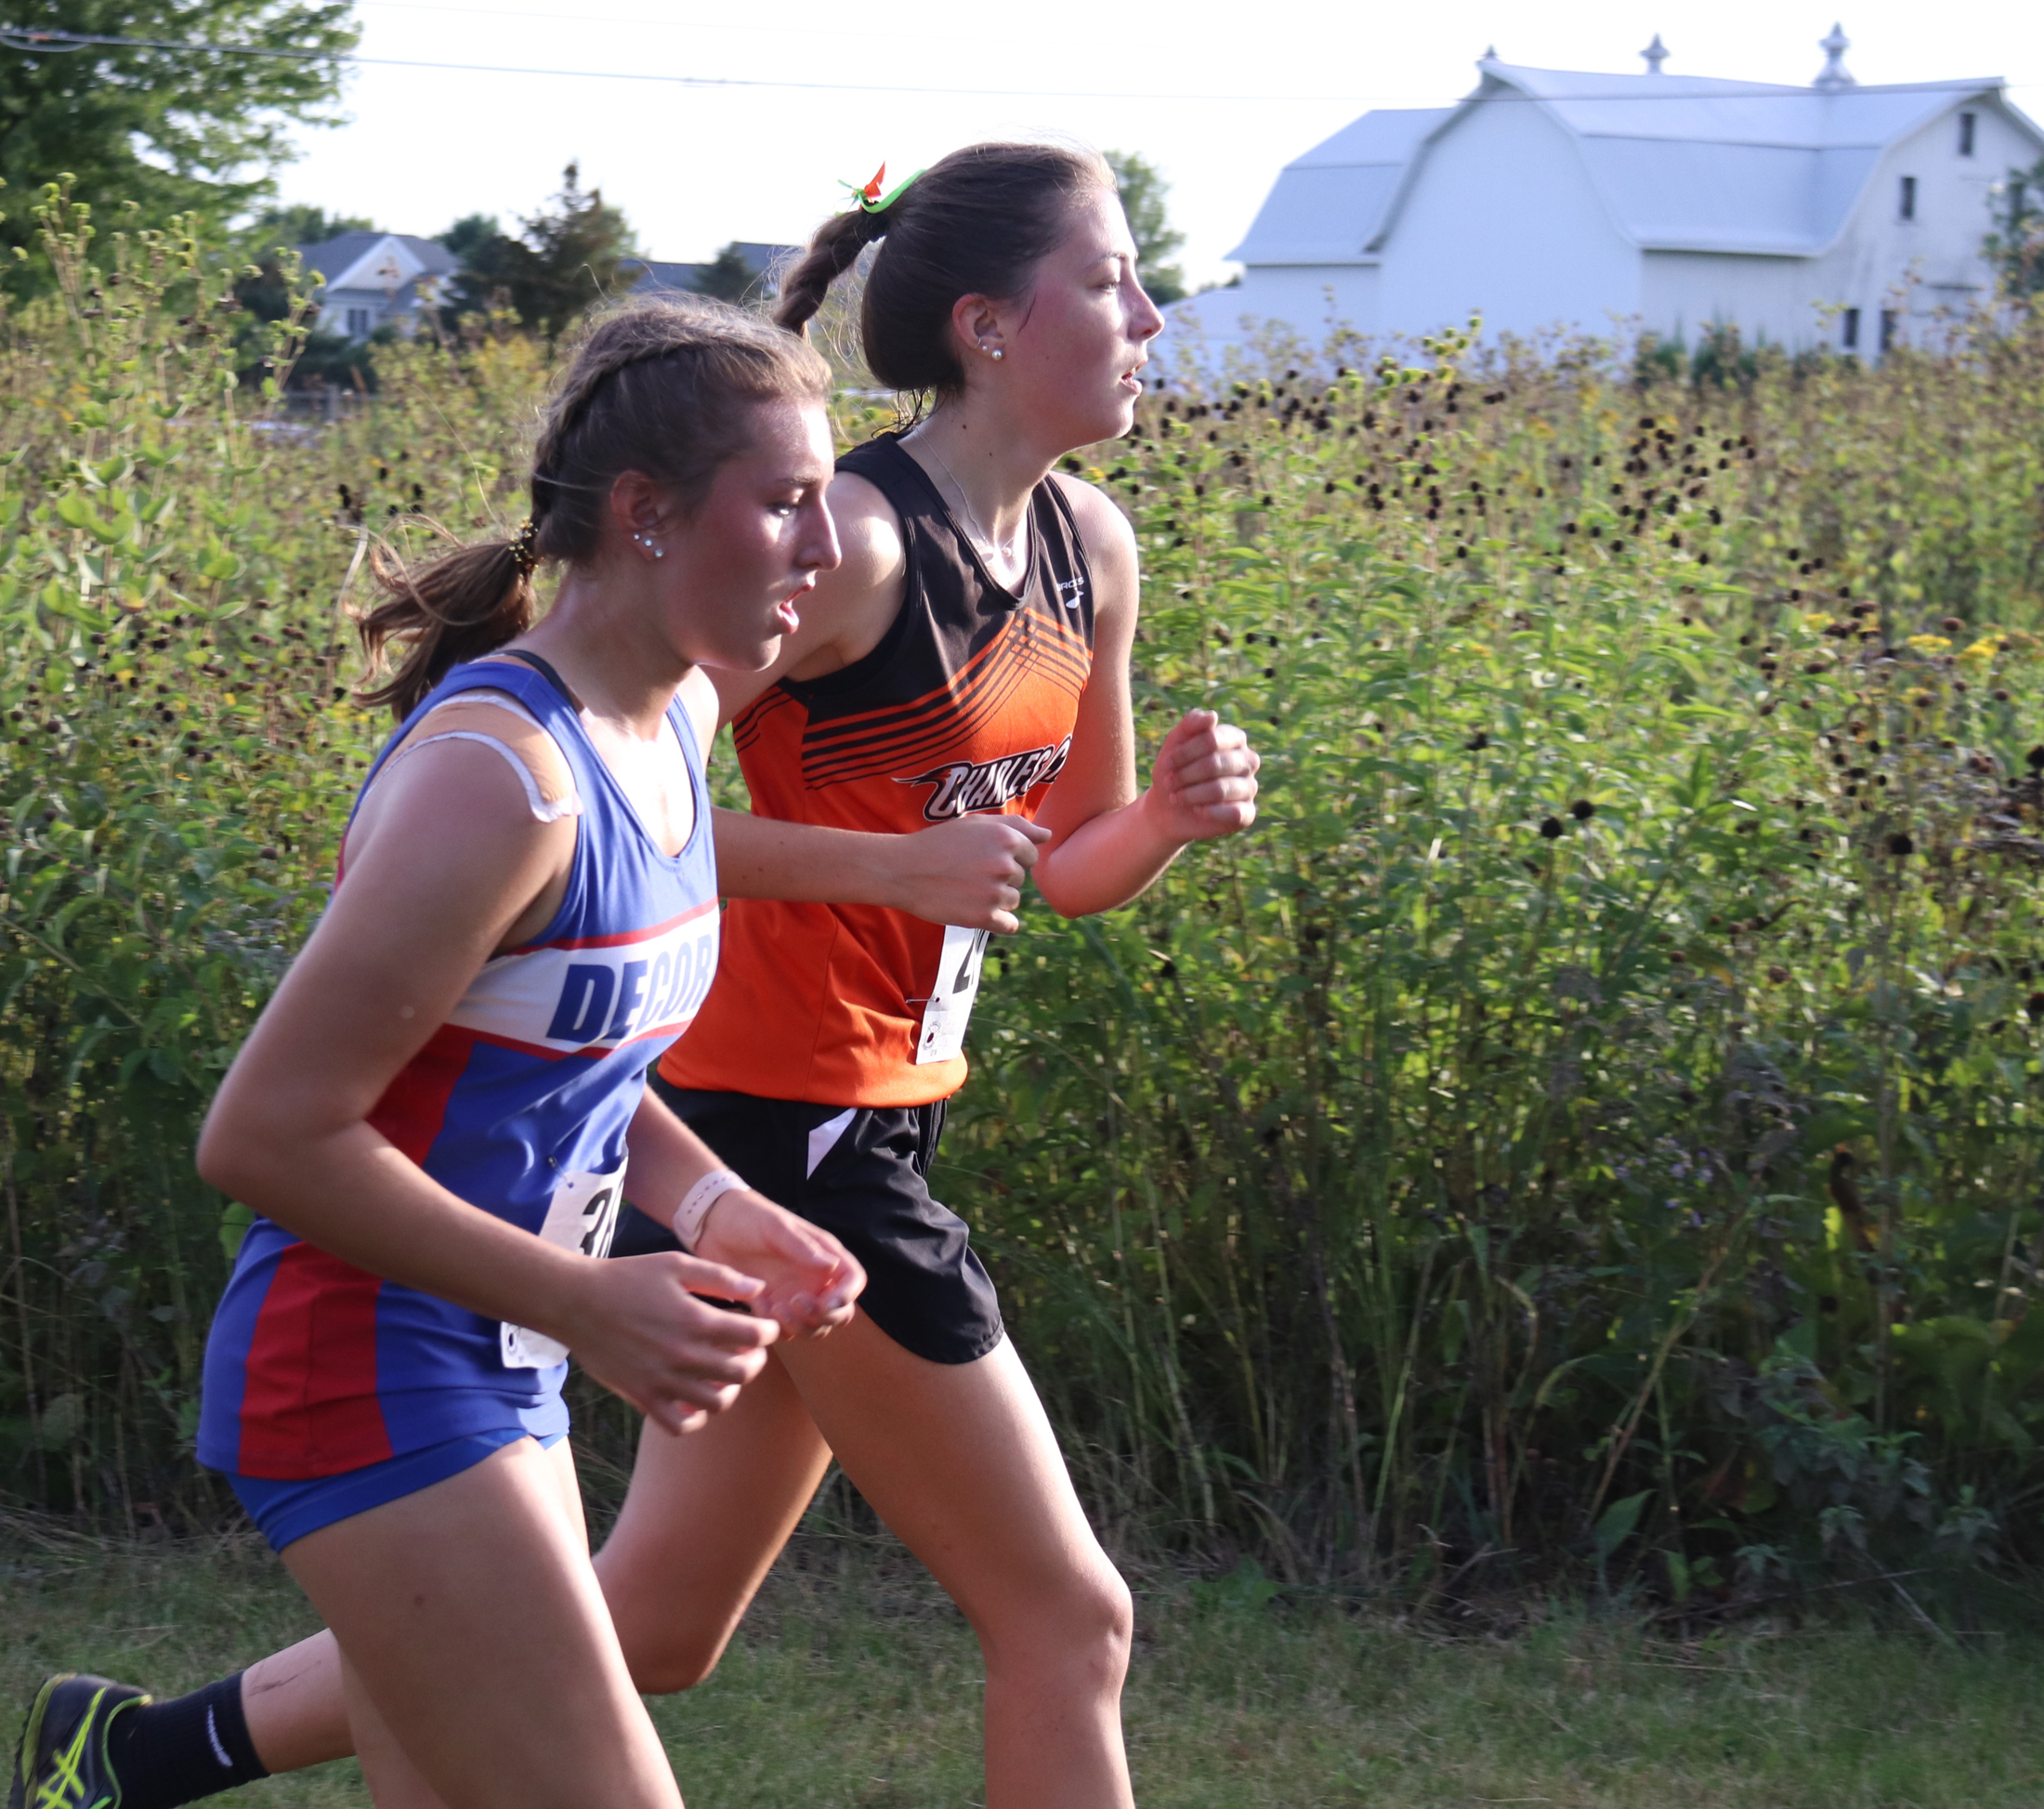 Libbie McKeag named Academic All-State for Cross Country